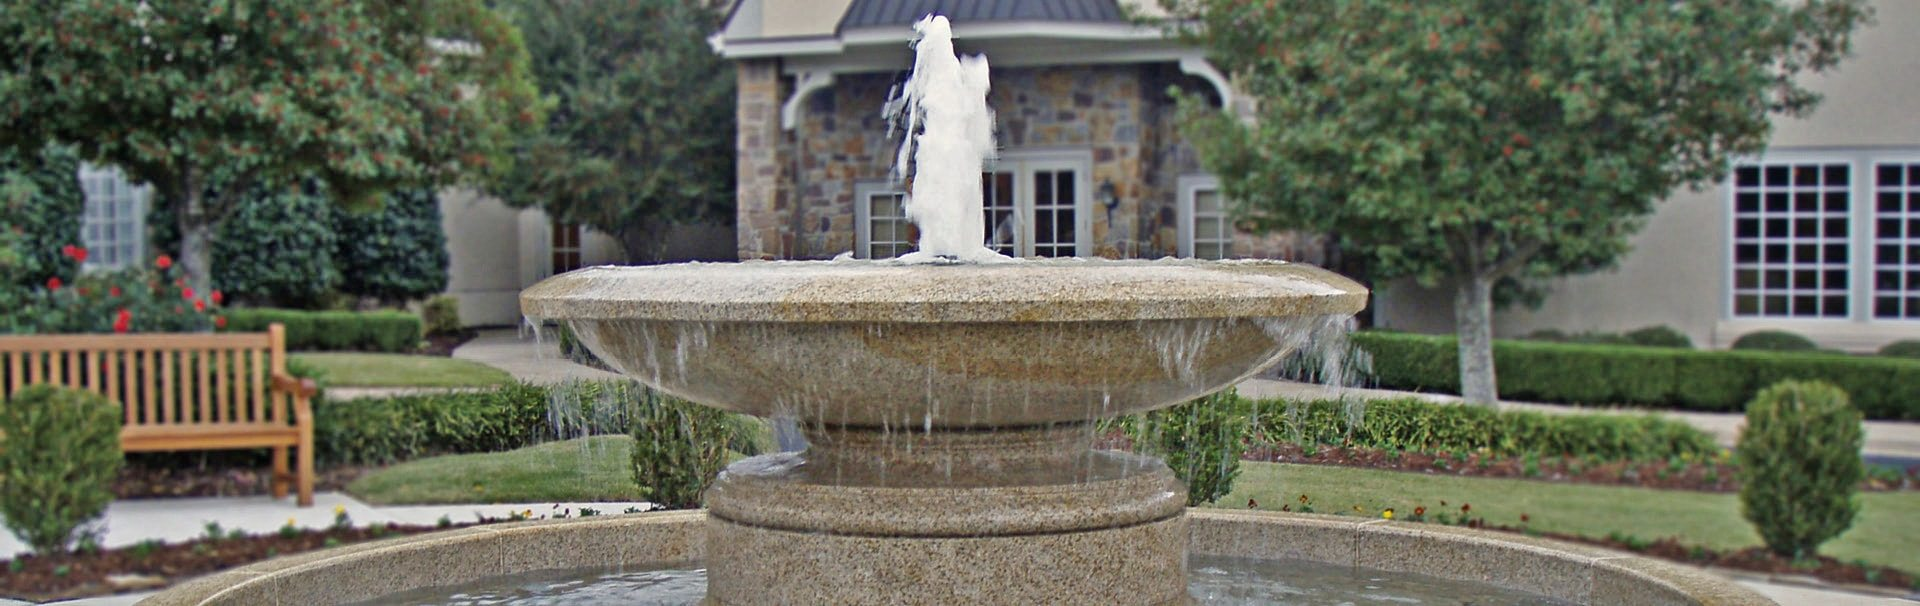 large stone urn fountain